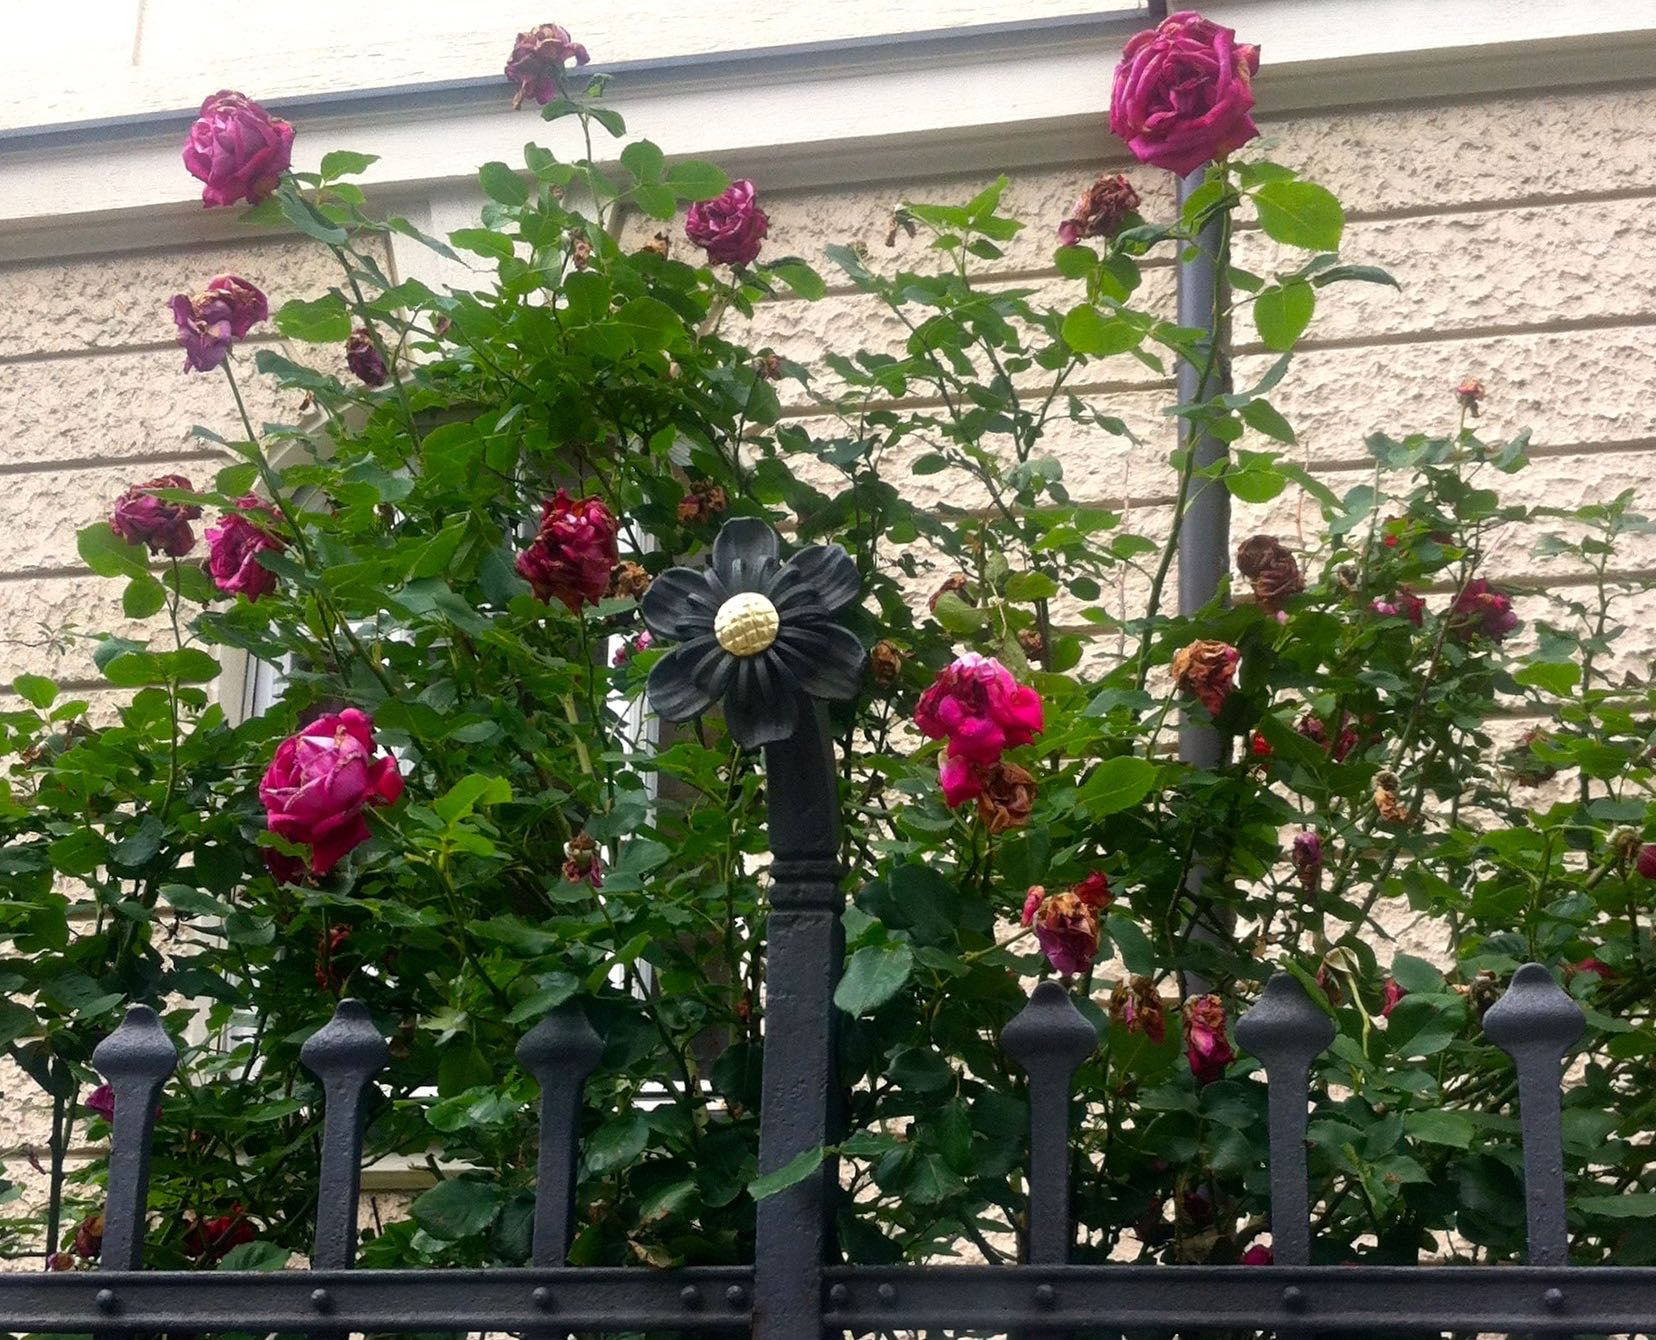 Roses and metalwork